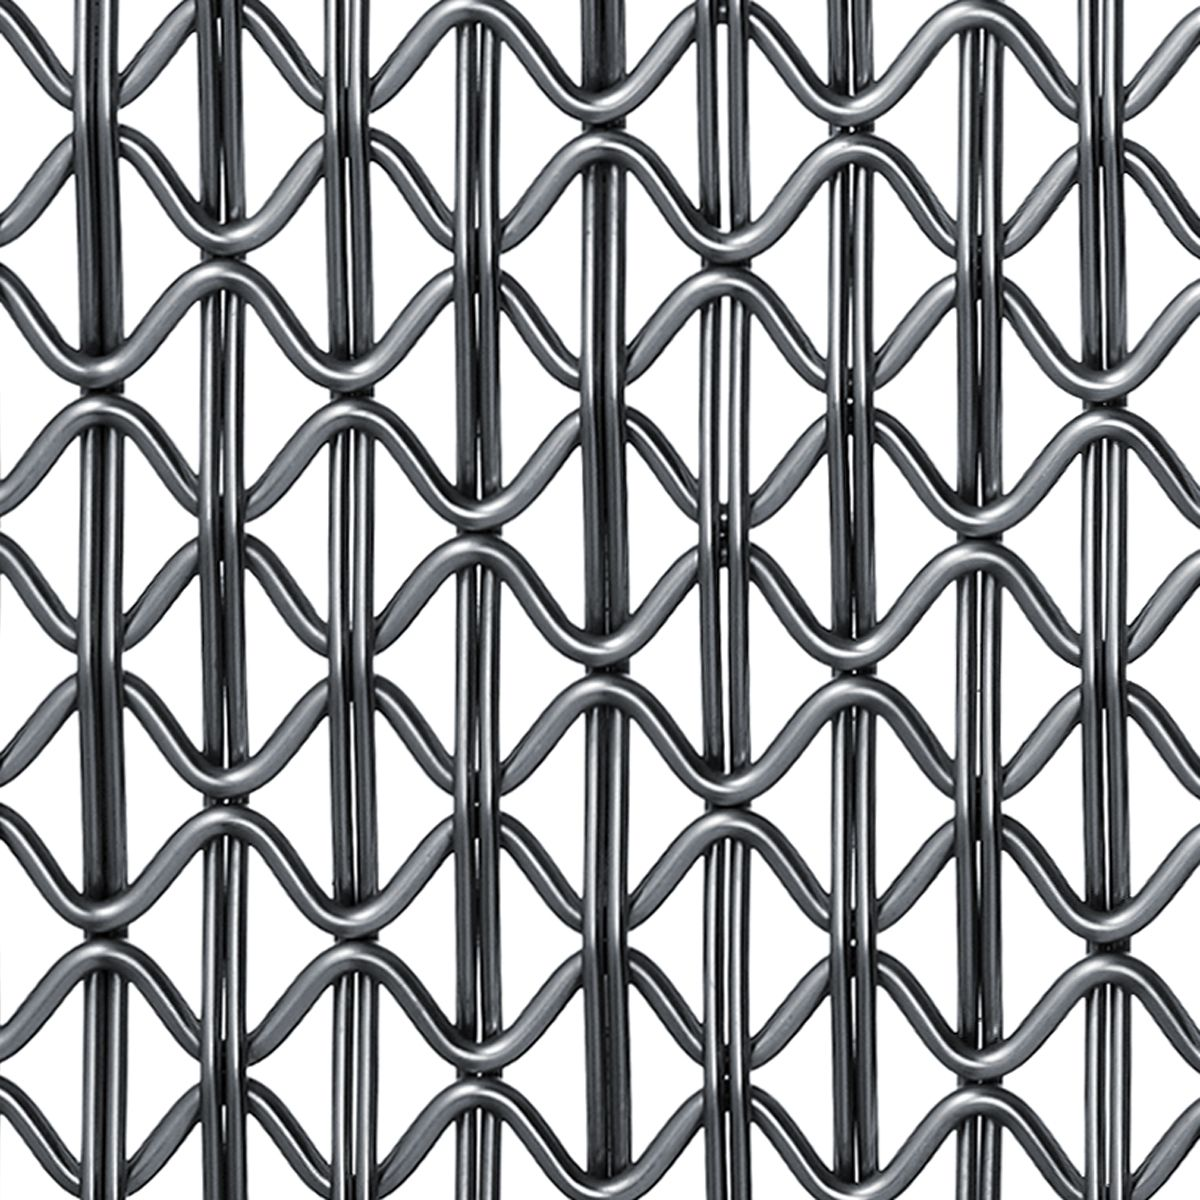 banker wire pattern txz 1 mid fill weave architectural wire mesh in 18 Inch Hair Weave banker wire pattern txz 1 mid fill weave architectural wire mesh in stainless